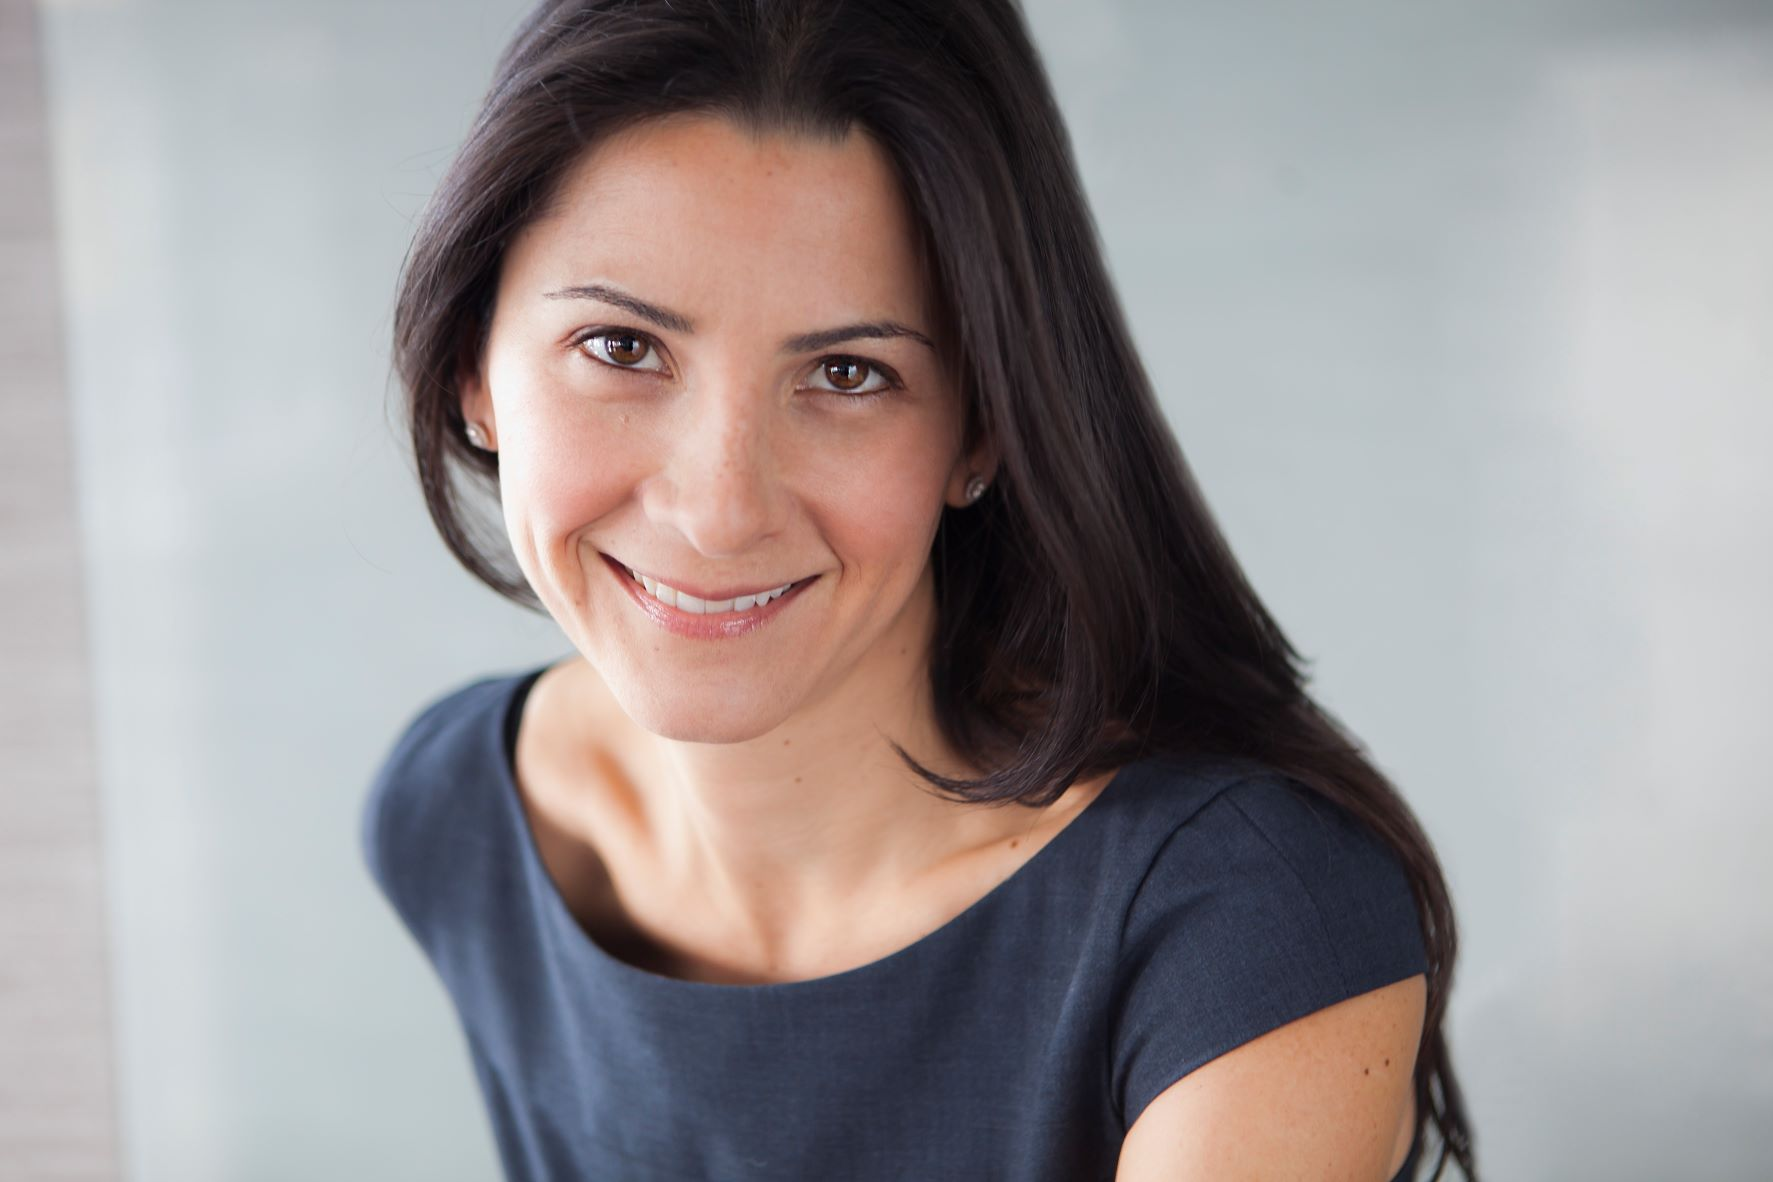 InMotion Stores Eden Goldberg, VP of marketing and business development at InMotion Entertainment Group